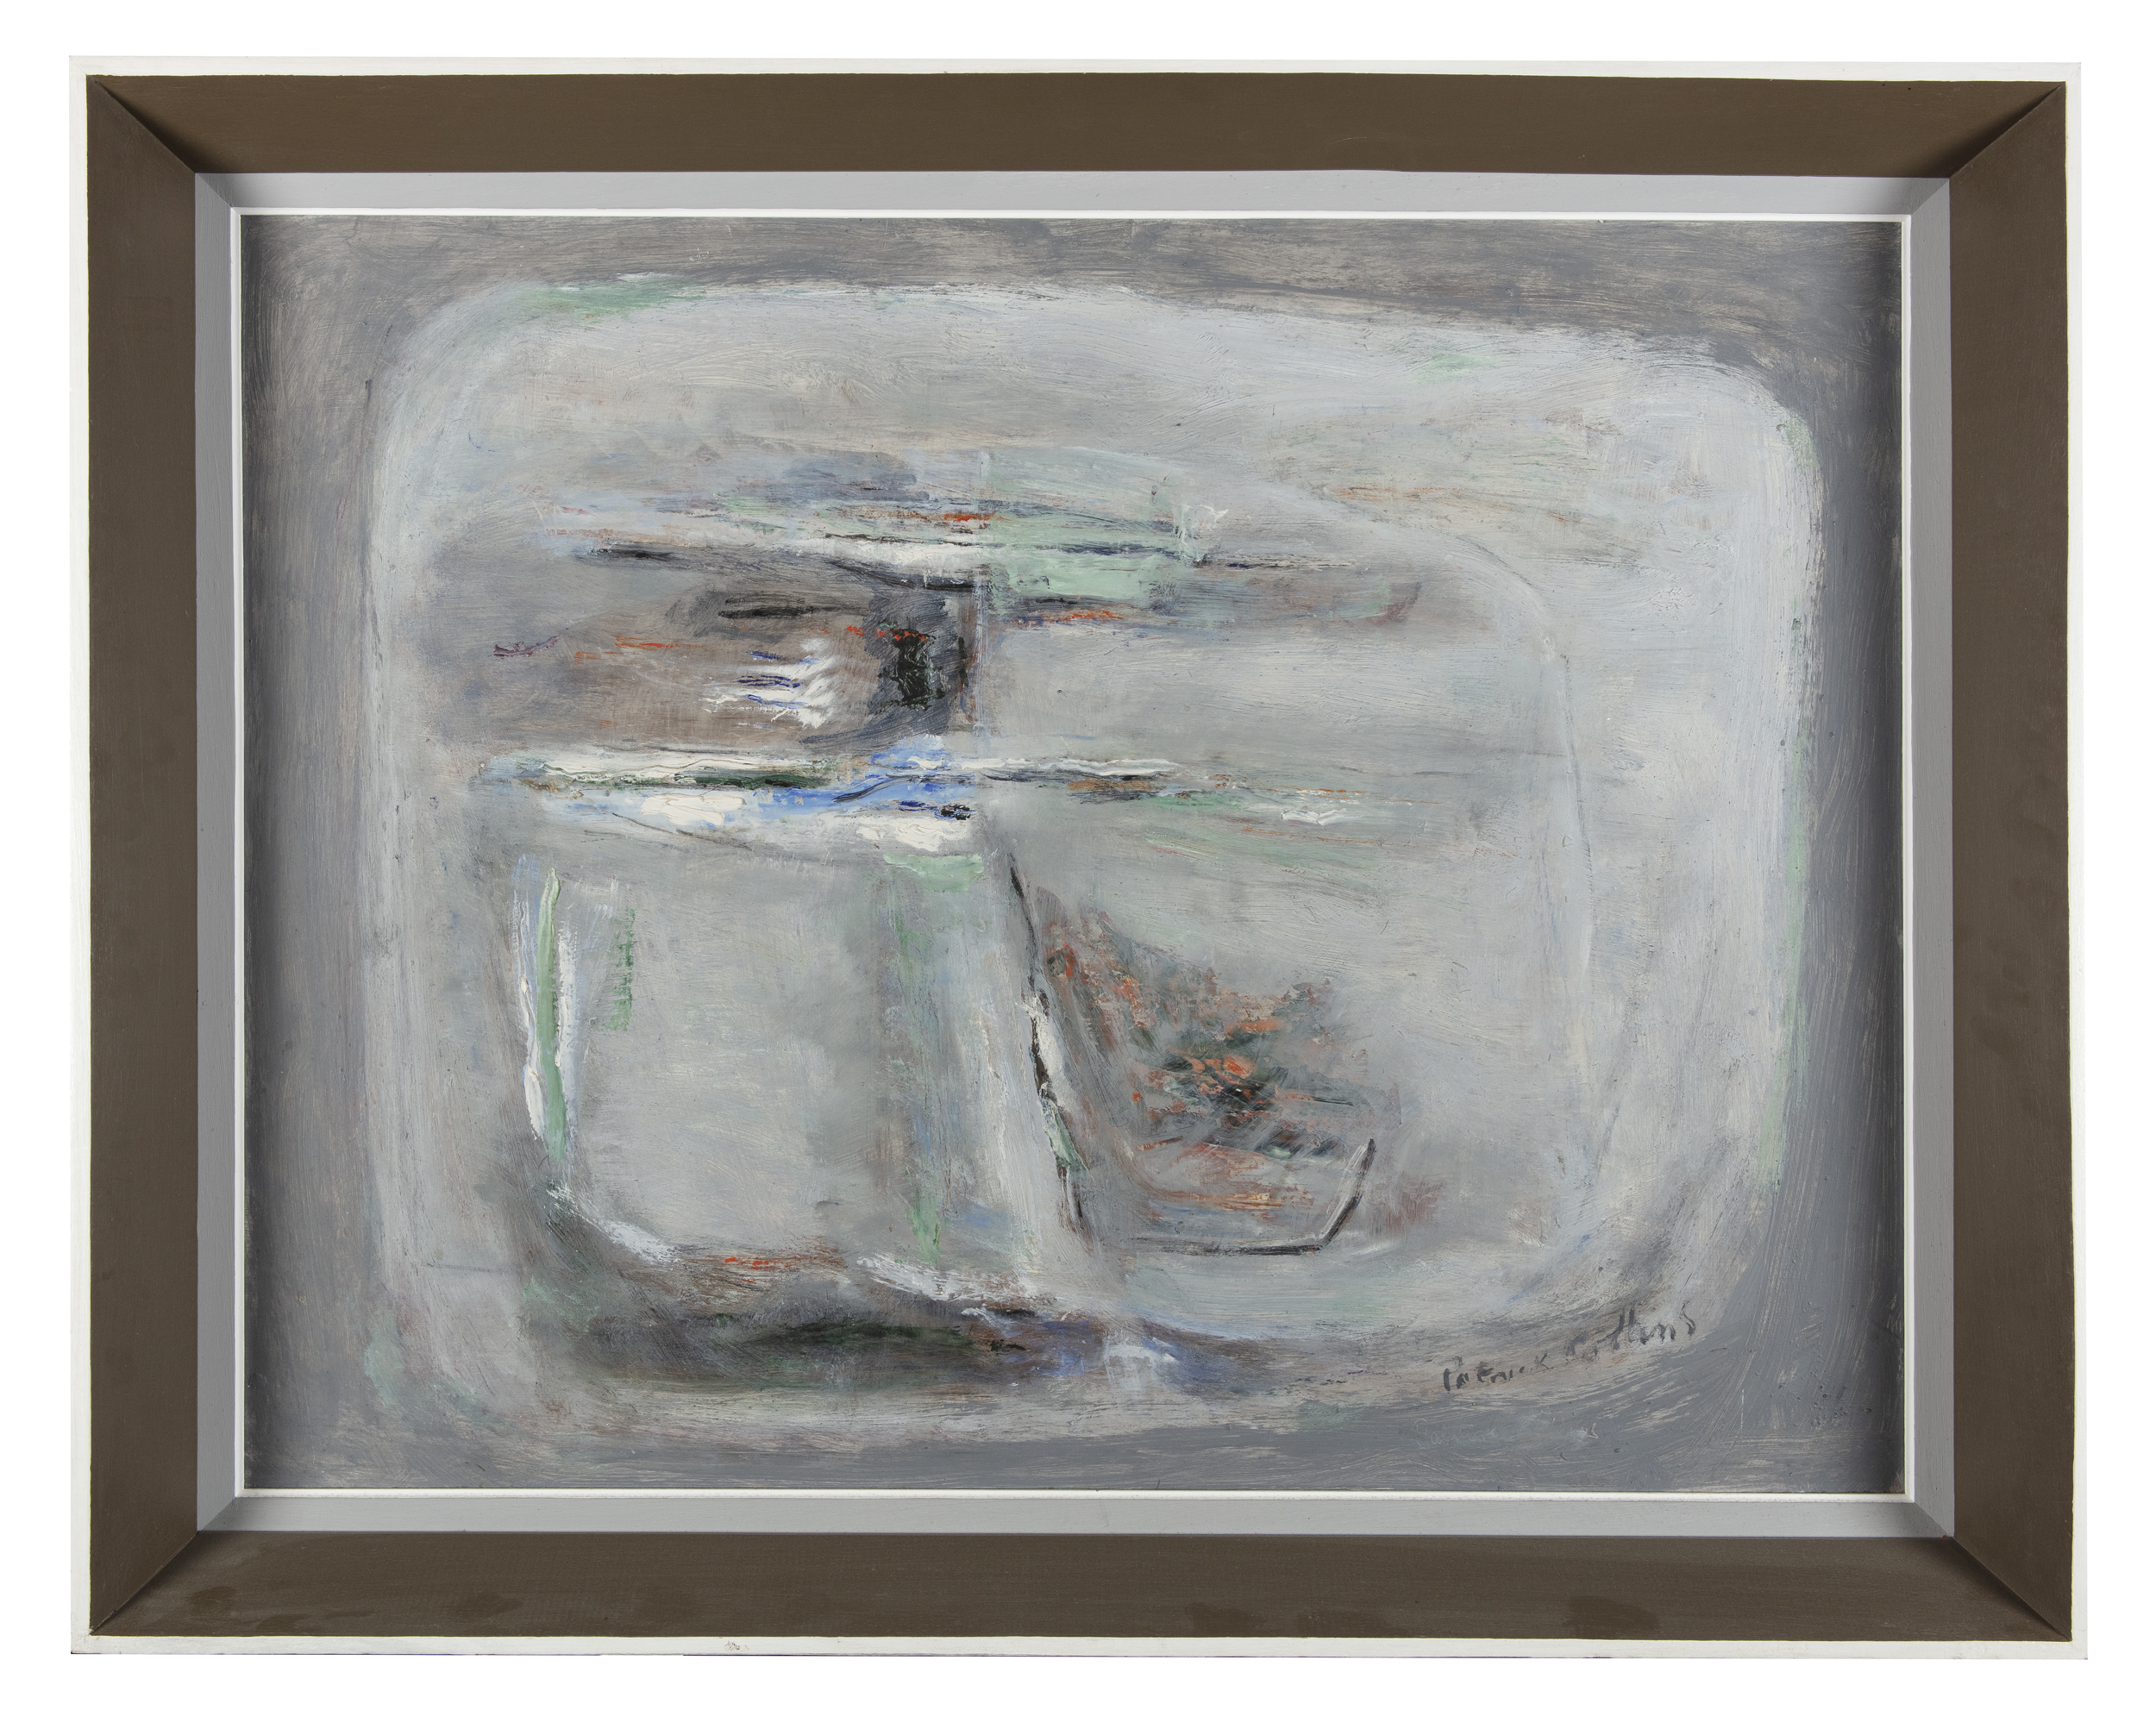 Lot 19 - Patrick Collins HRHA (1911-1994)Sligo Landscape (1965-67)Oil on canvas 69.5 x 90cm (27¼ x 35½)